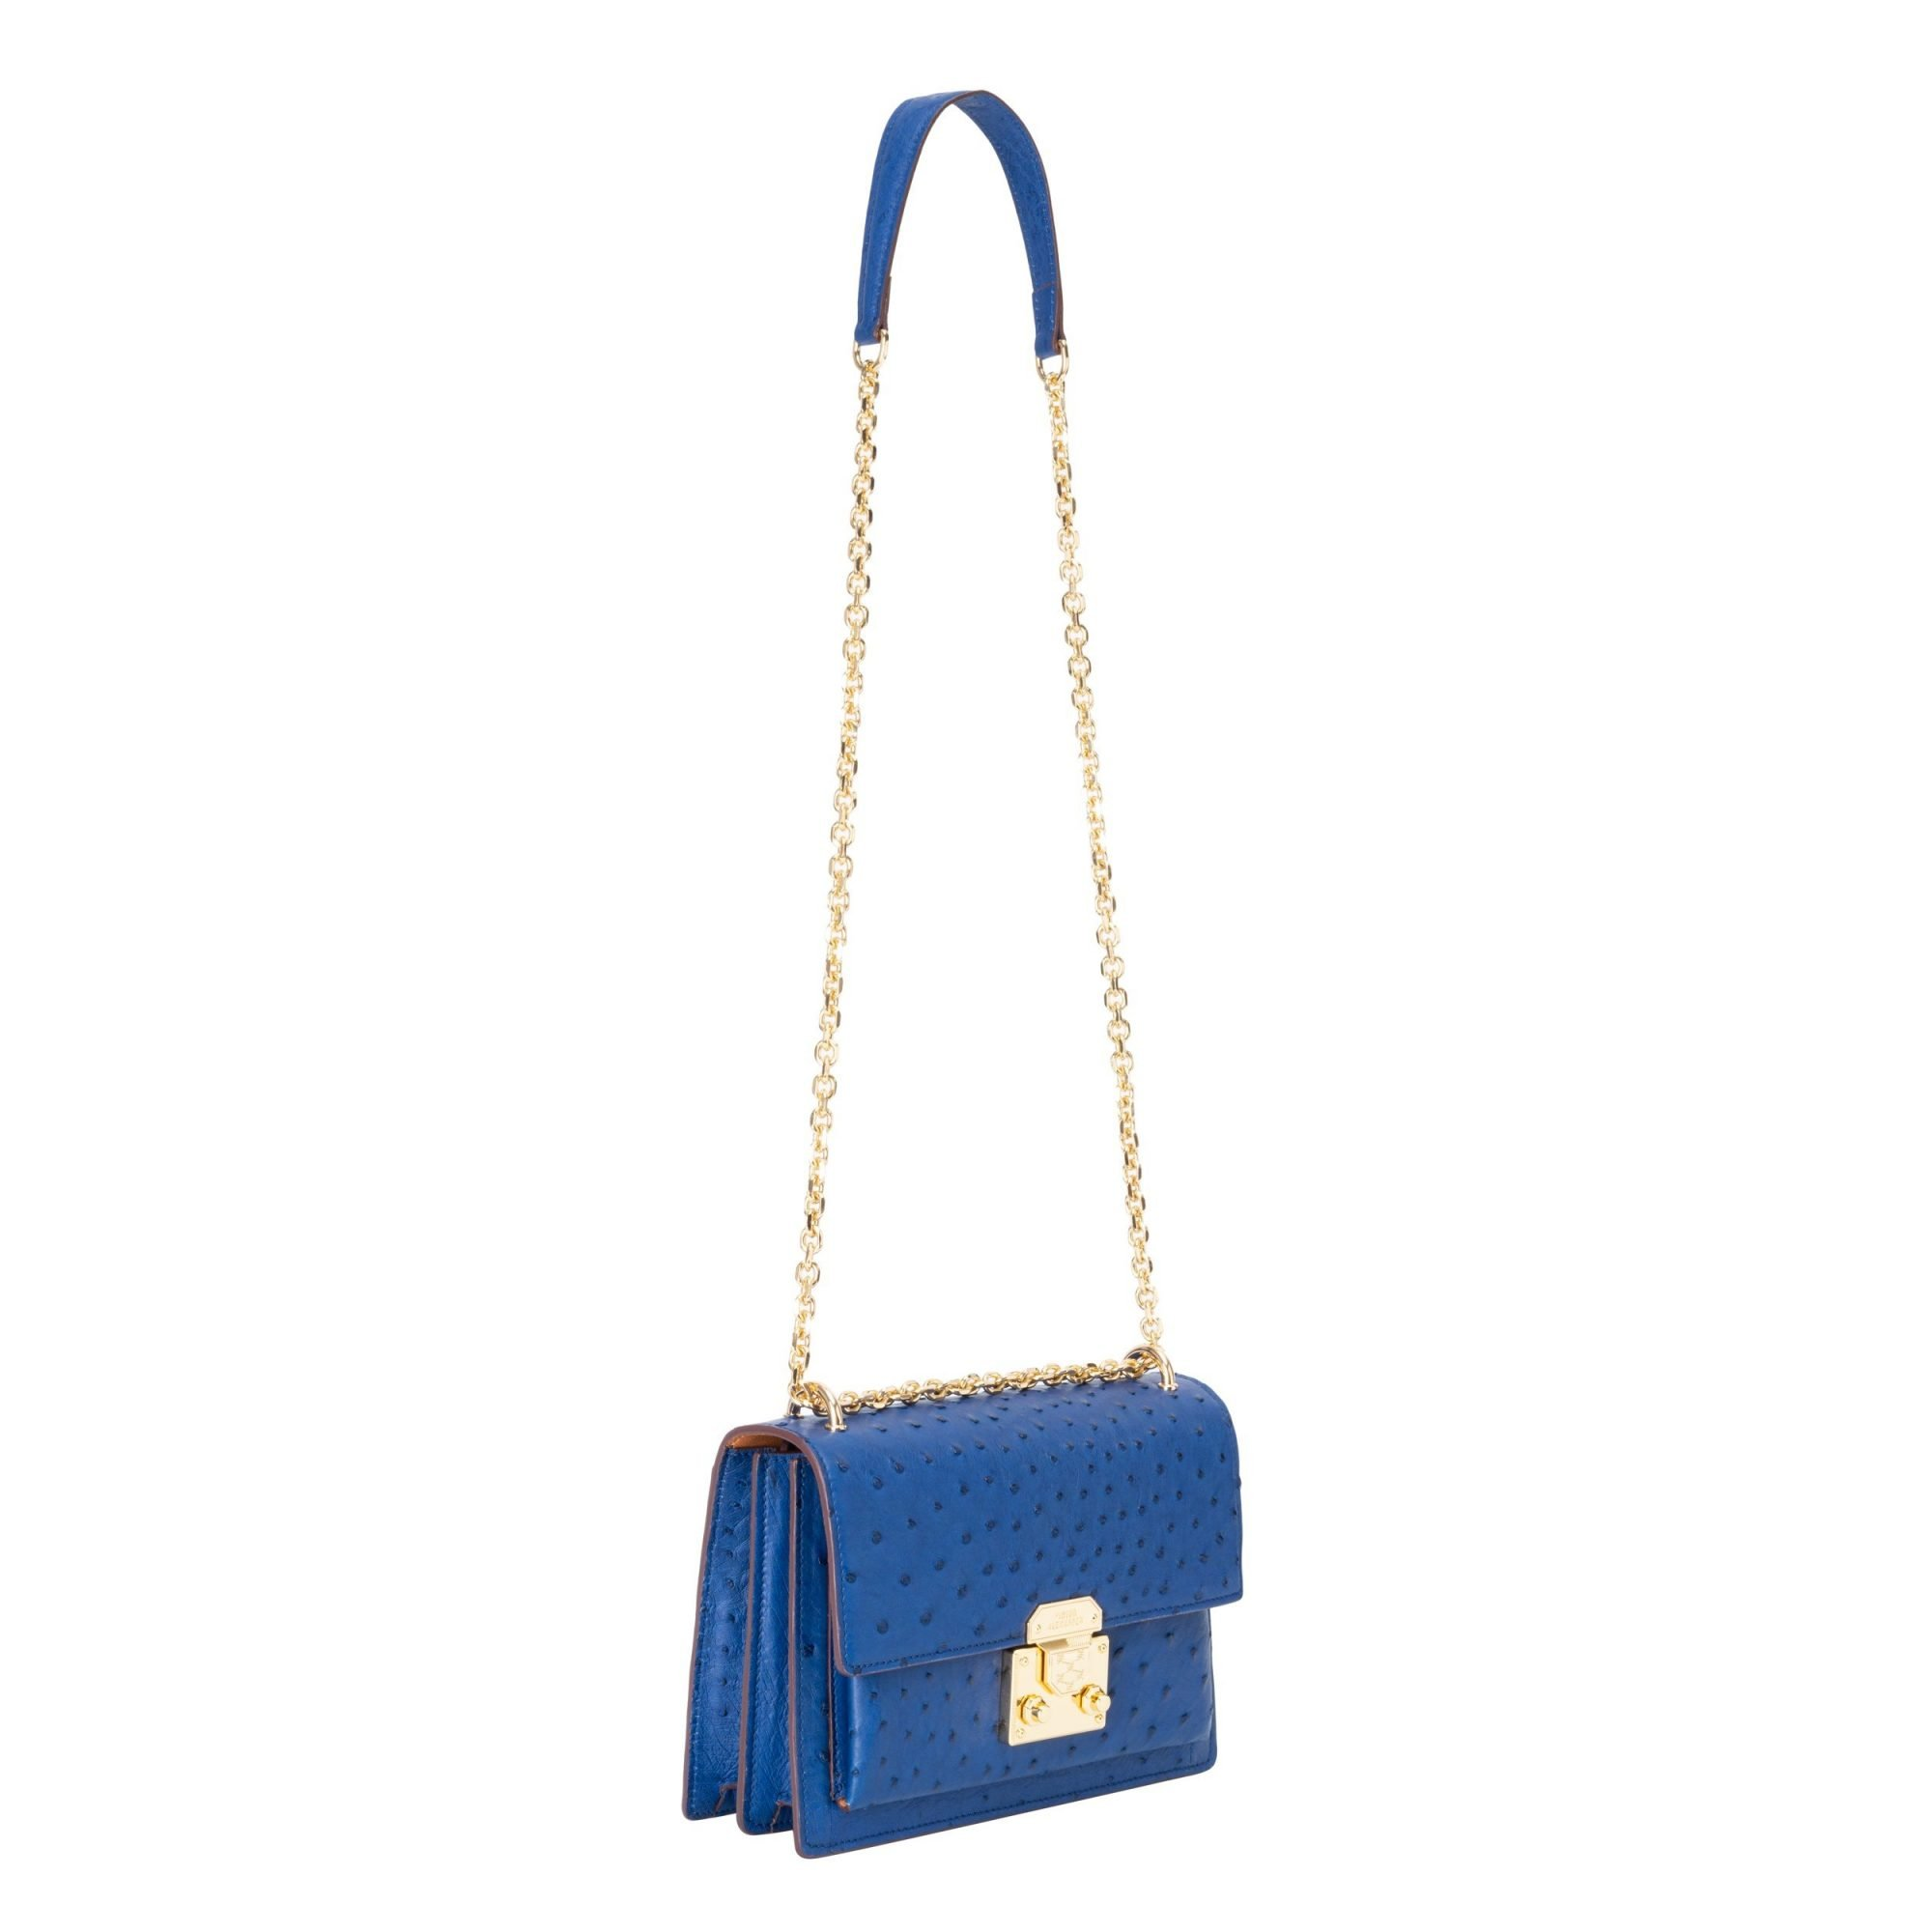 BECCA 23 OSTRICH LEATHER BAG SIDE PROFILE